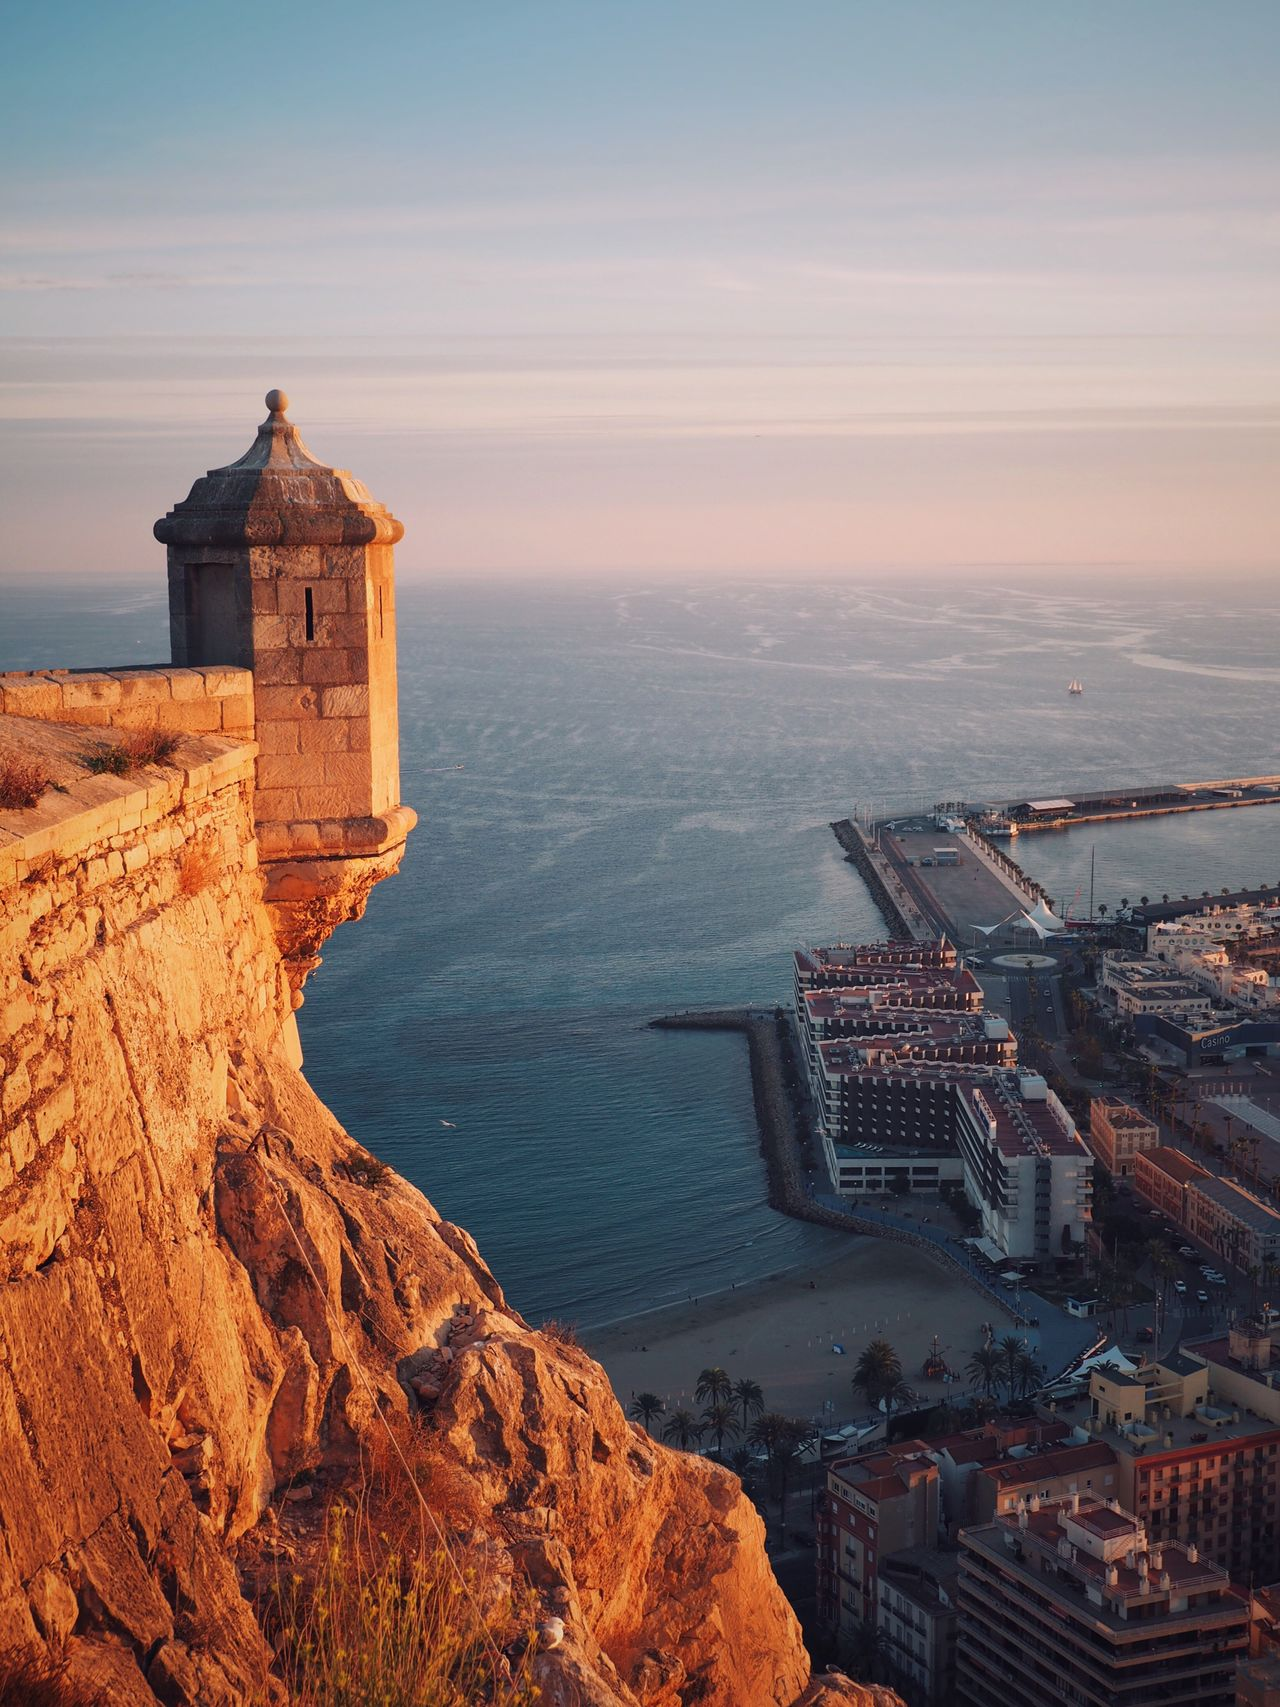 Sea Building Exterior Built Structure Architecture Water Sky Tower No People Outdoors Beauty In Nature City Horizon Over Water Nature Scenics Cityscape Day Scenic Lookout Sky And Clouds Sea And Sky Sunset SPAIN